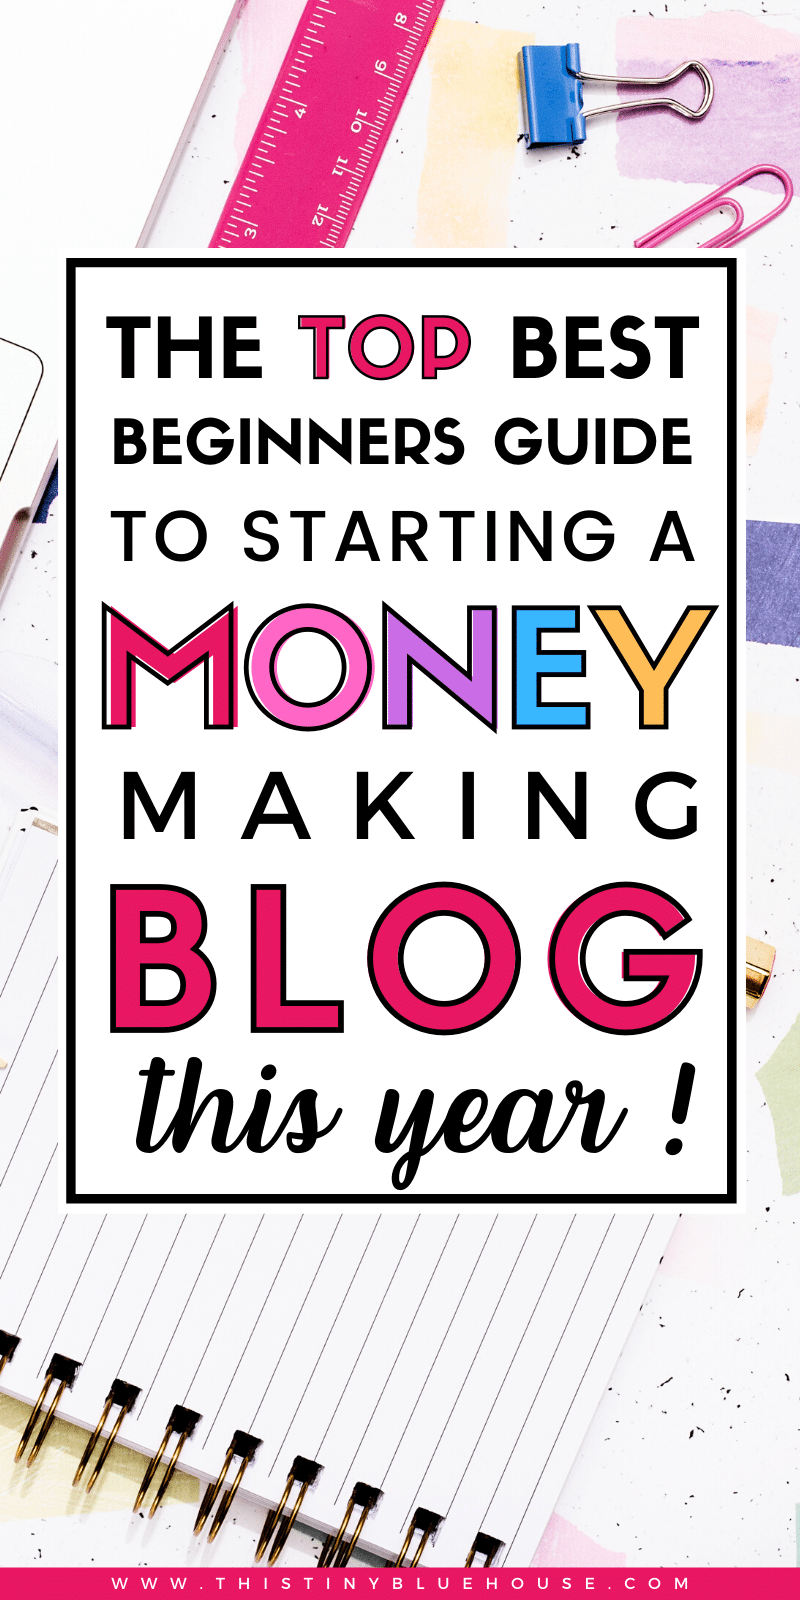 Curious about how bloggers make money? If you're interested in understanding how bloggers make money with their blog and turn it into a full-time income you've come to the right place. This no-nonsense guide will explain the process of making money with your blog in detail. I've been blogging just over 3 years and in that time I've manage to double my family income and make thousands of dollars every month. In this post I share all the details. #blogging #bloggingforbeginners #bloggingformoney #howblogsmakemoney #howtomakemoneyblogging #bestwaystomakemoneywithablog #howtomakemoneywithamomblog #howtomakemoneywithablog